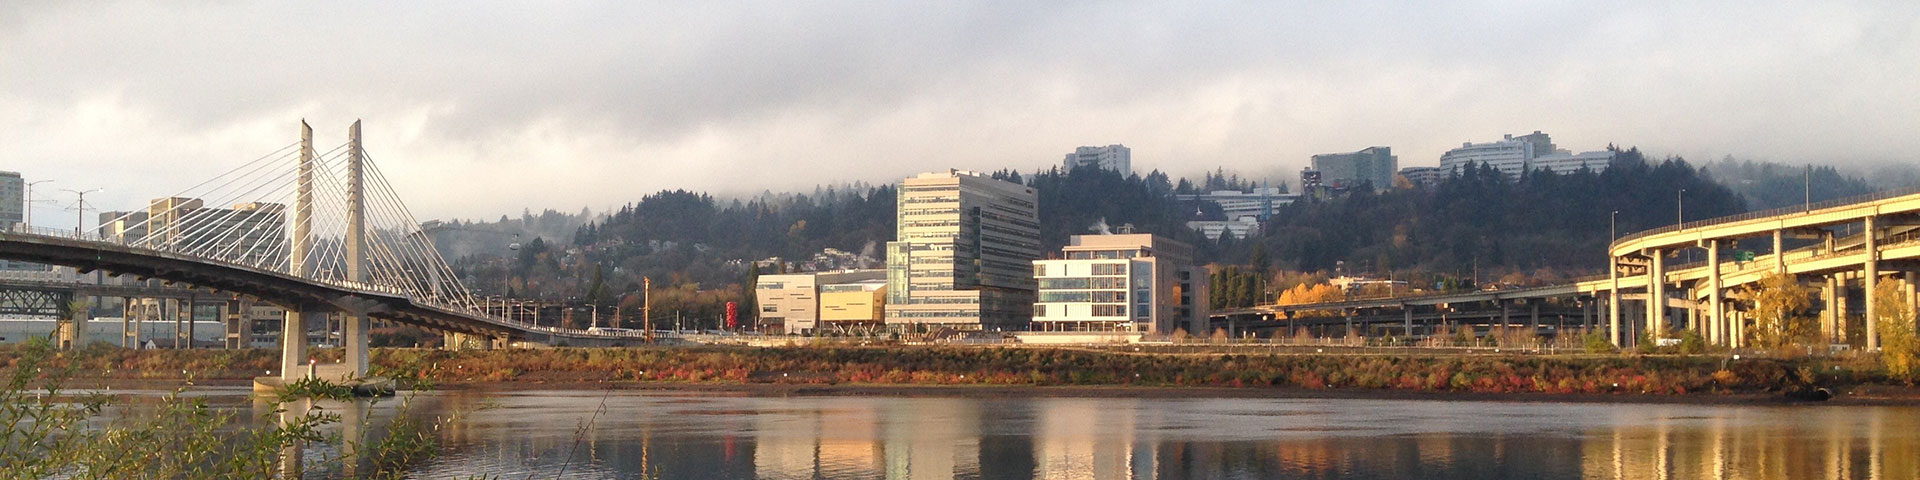 The Knight Cancer Research Building and Roberston Life Sciences Building as seen from across the Willamette River in the autumn